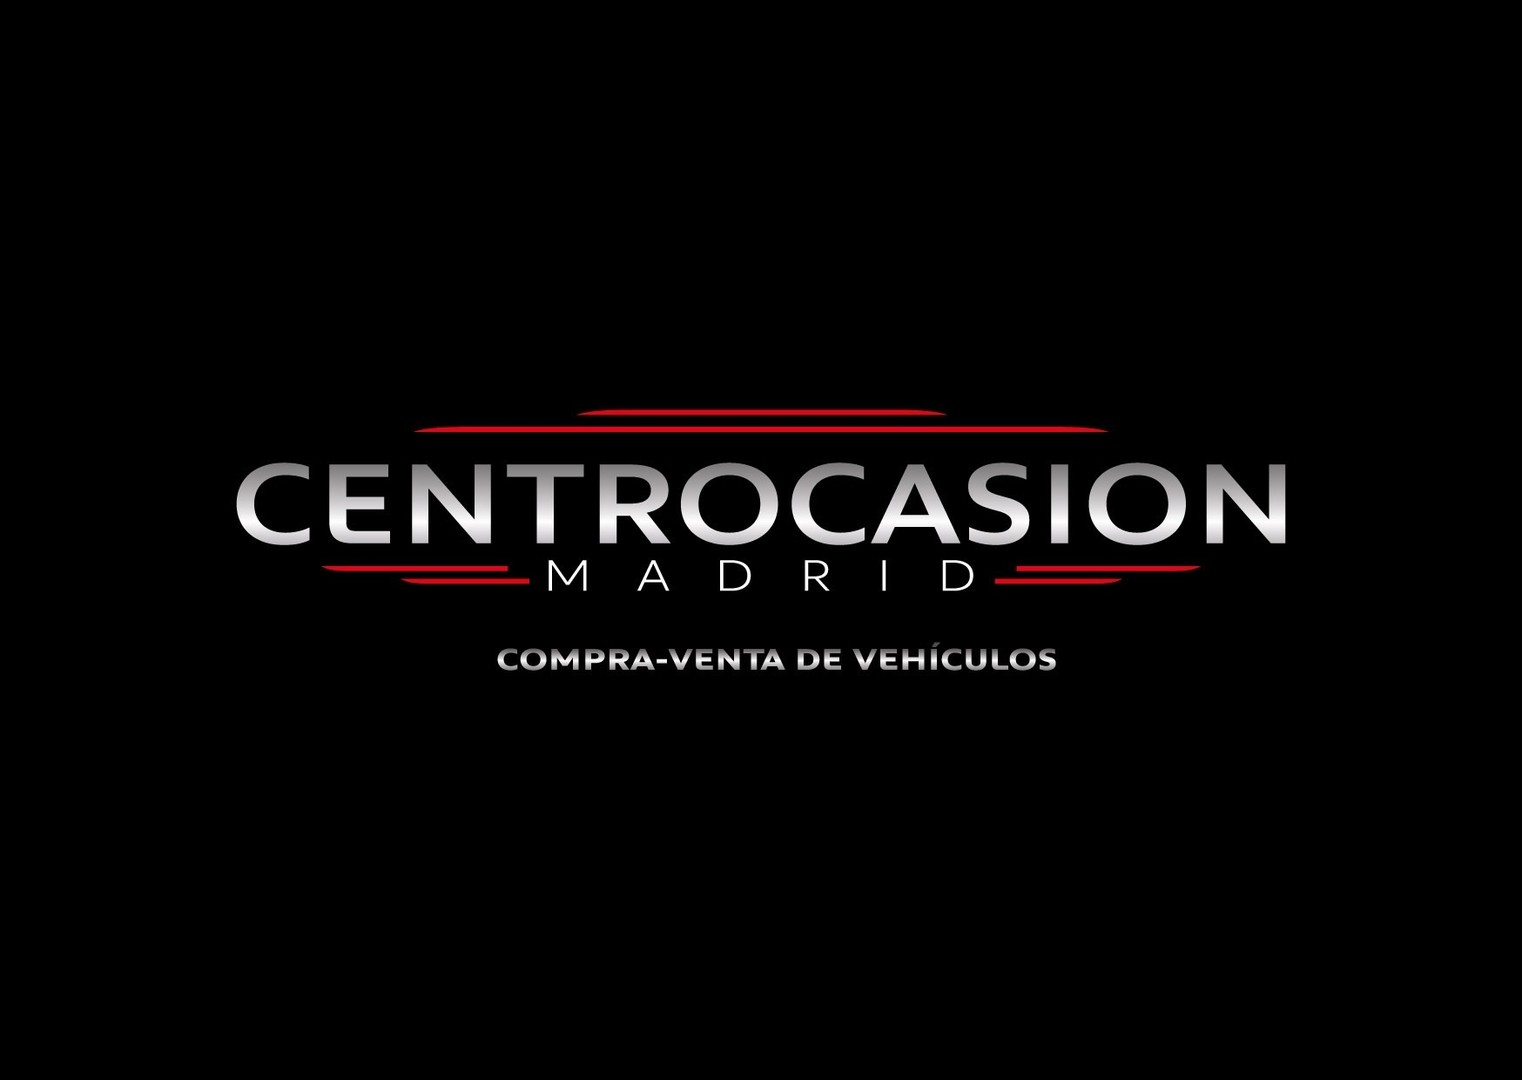 CENTROCASION